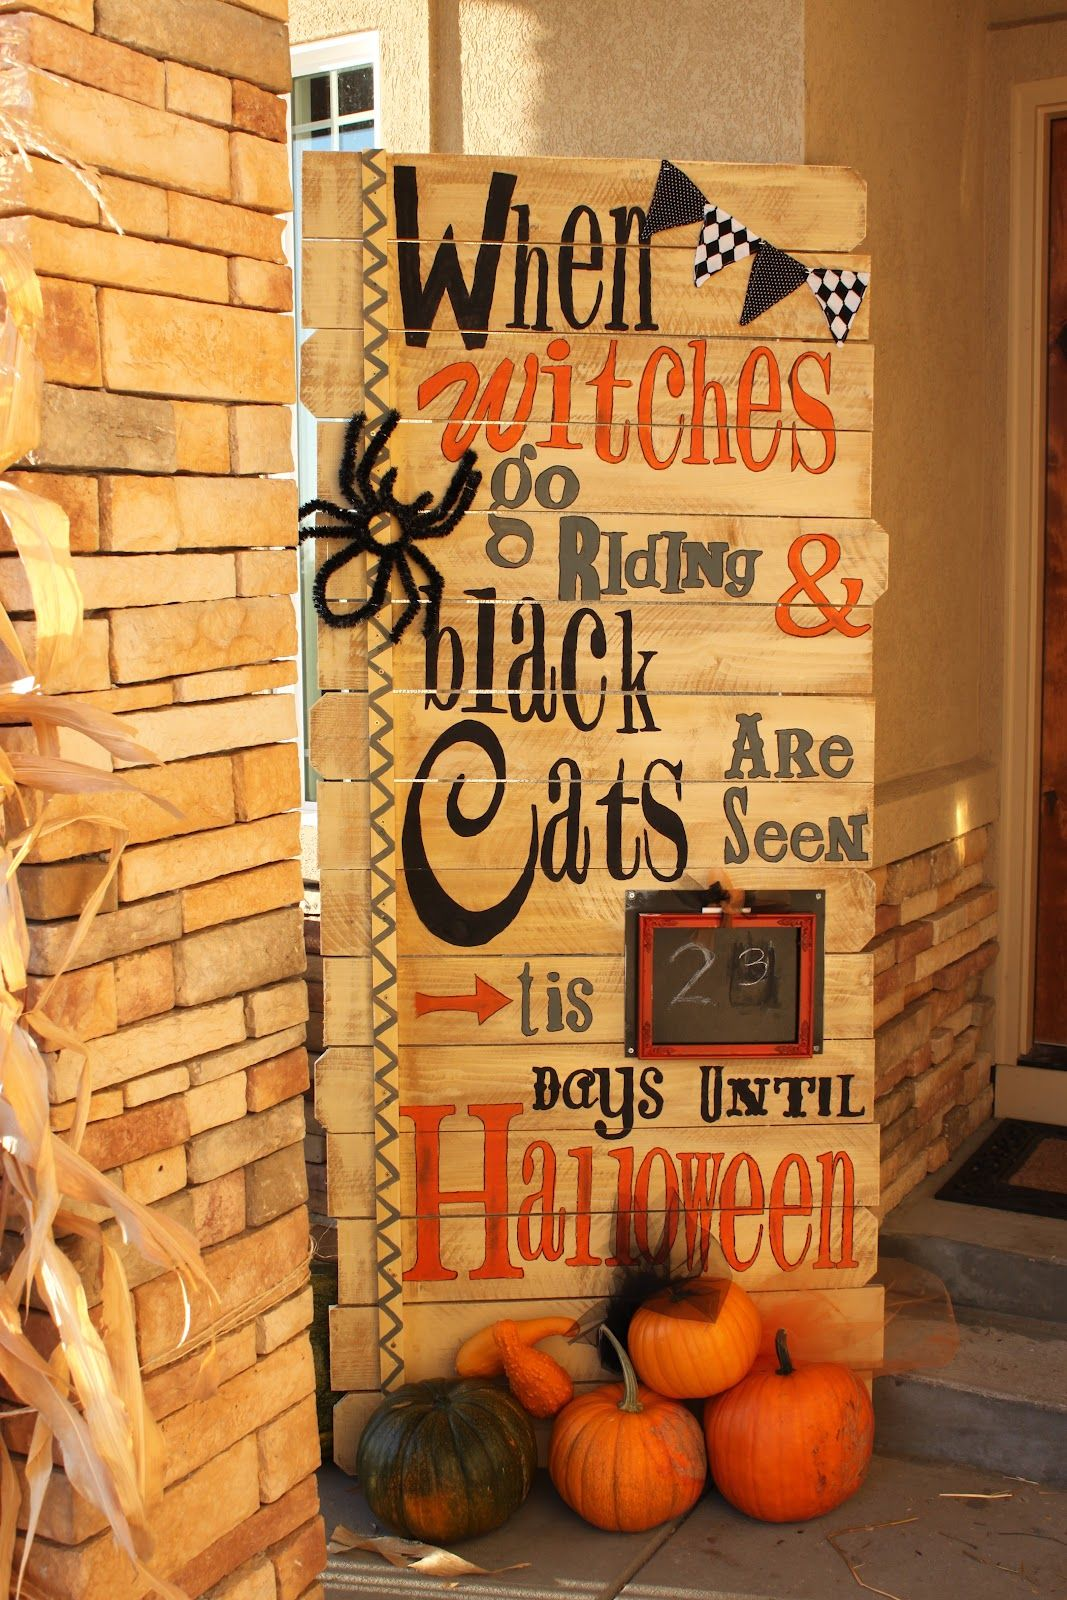 IMG_0486jpg 1,067×1,600 pixels Halloween Pinterest Black cats